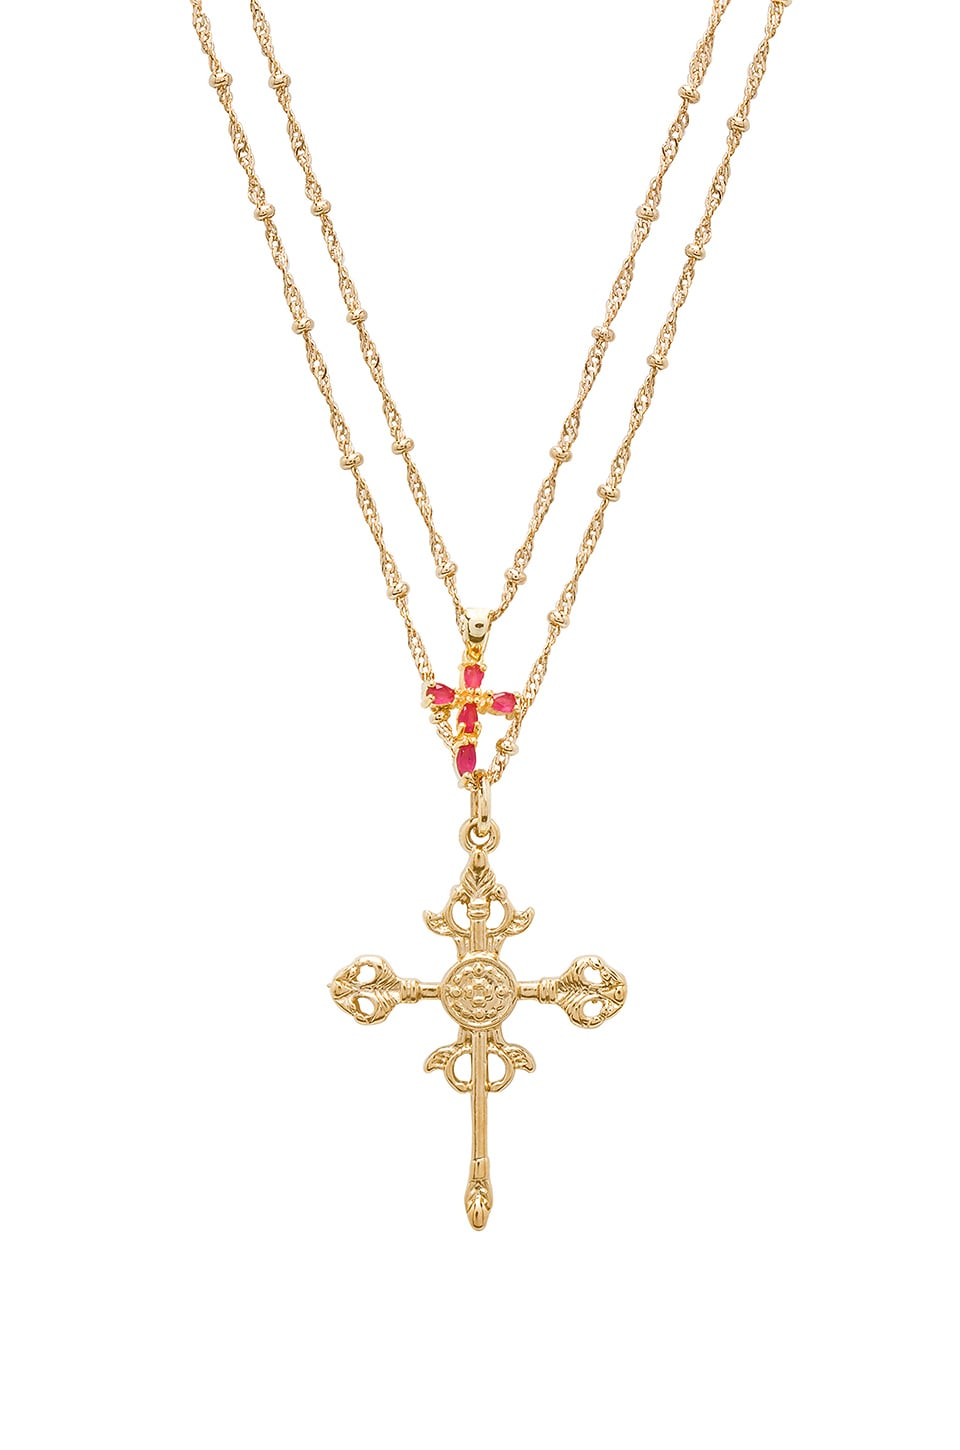 JOOLZ BY MARTHA CALVO Roman Cross Set Necklace in Metallic Gold